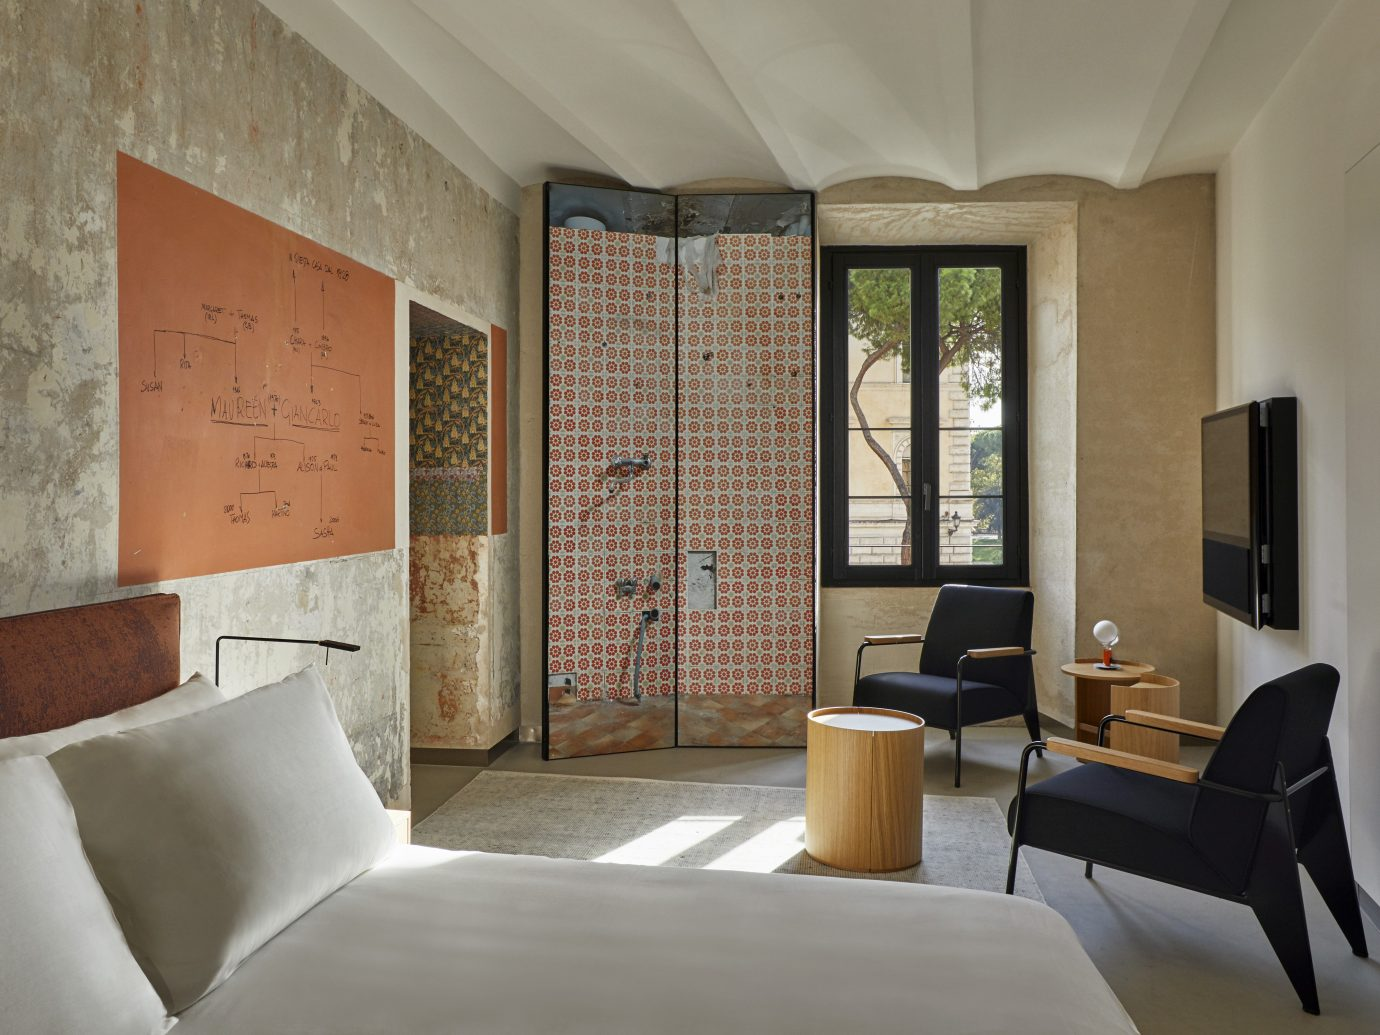 Rooms of Rome, Italy guestroom